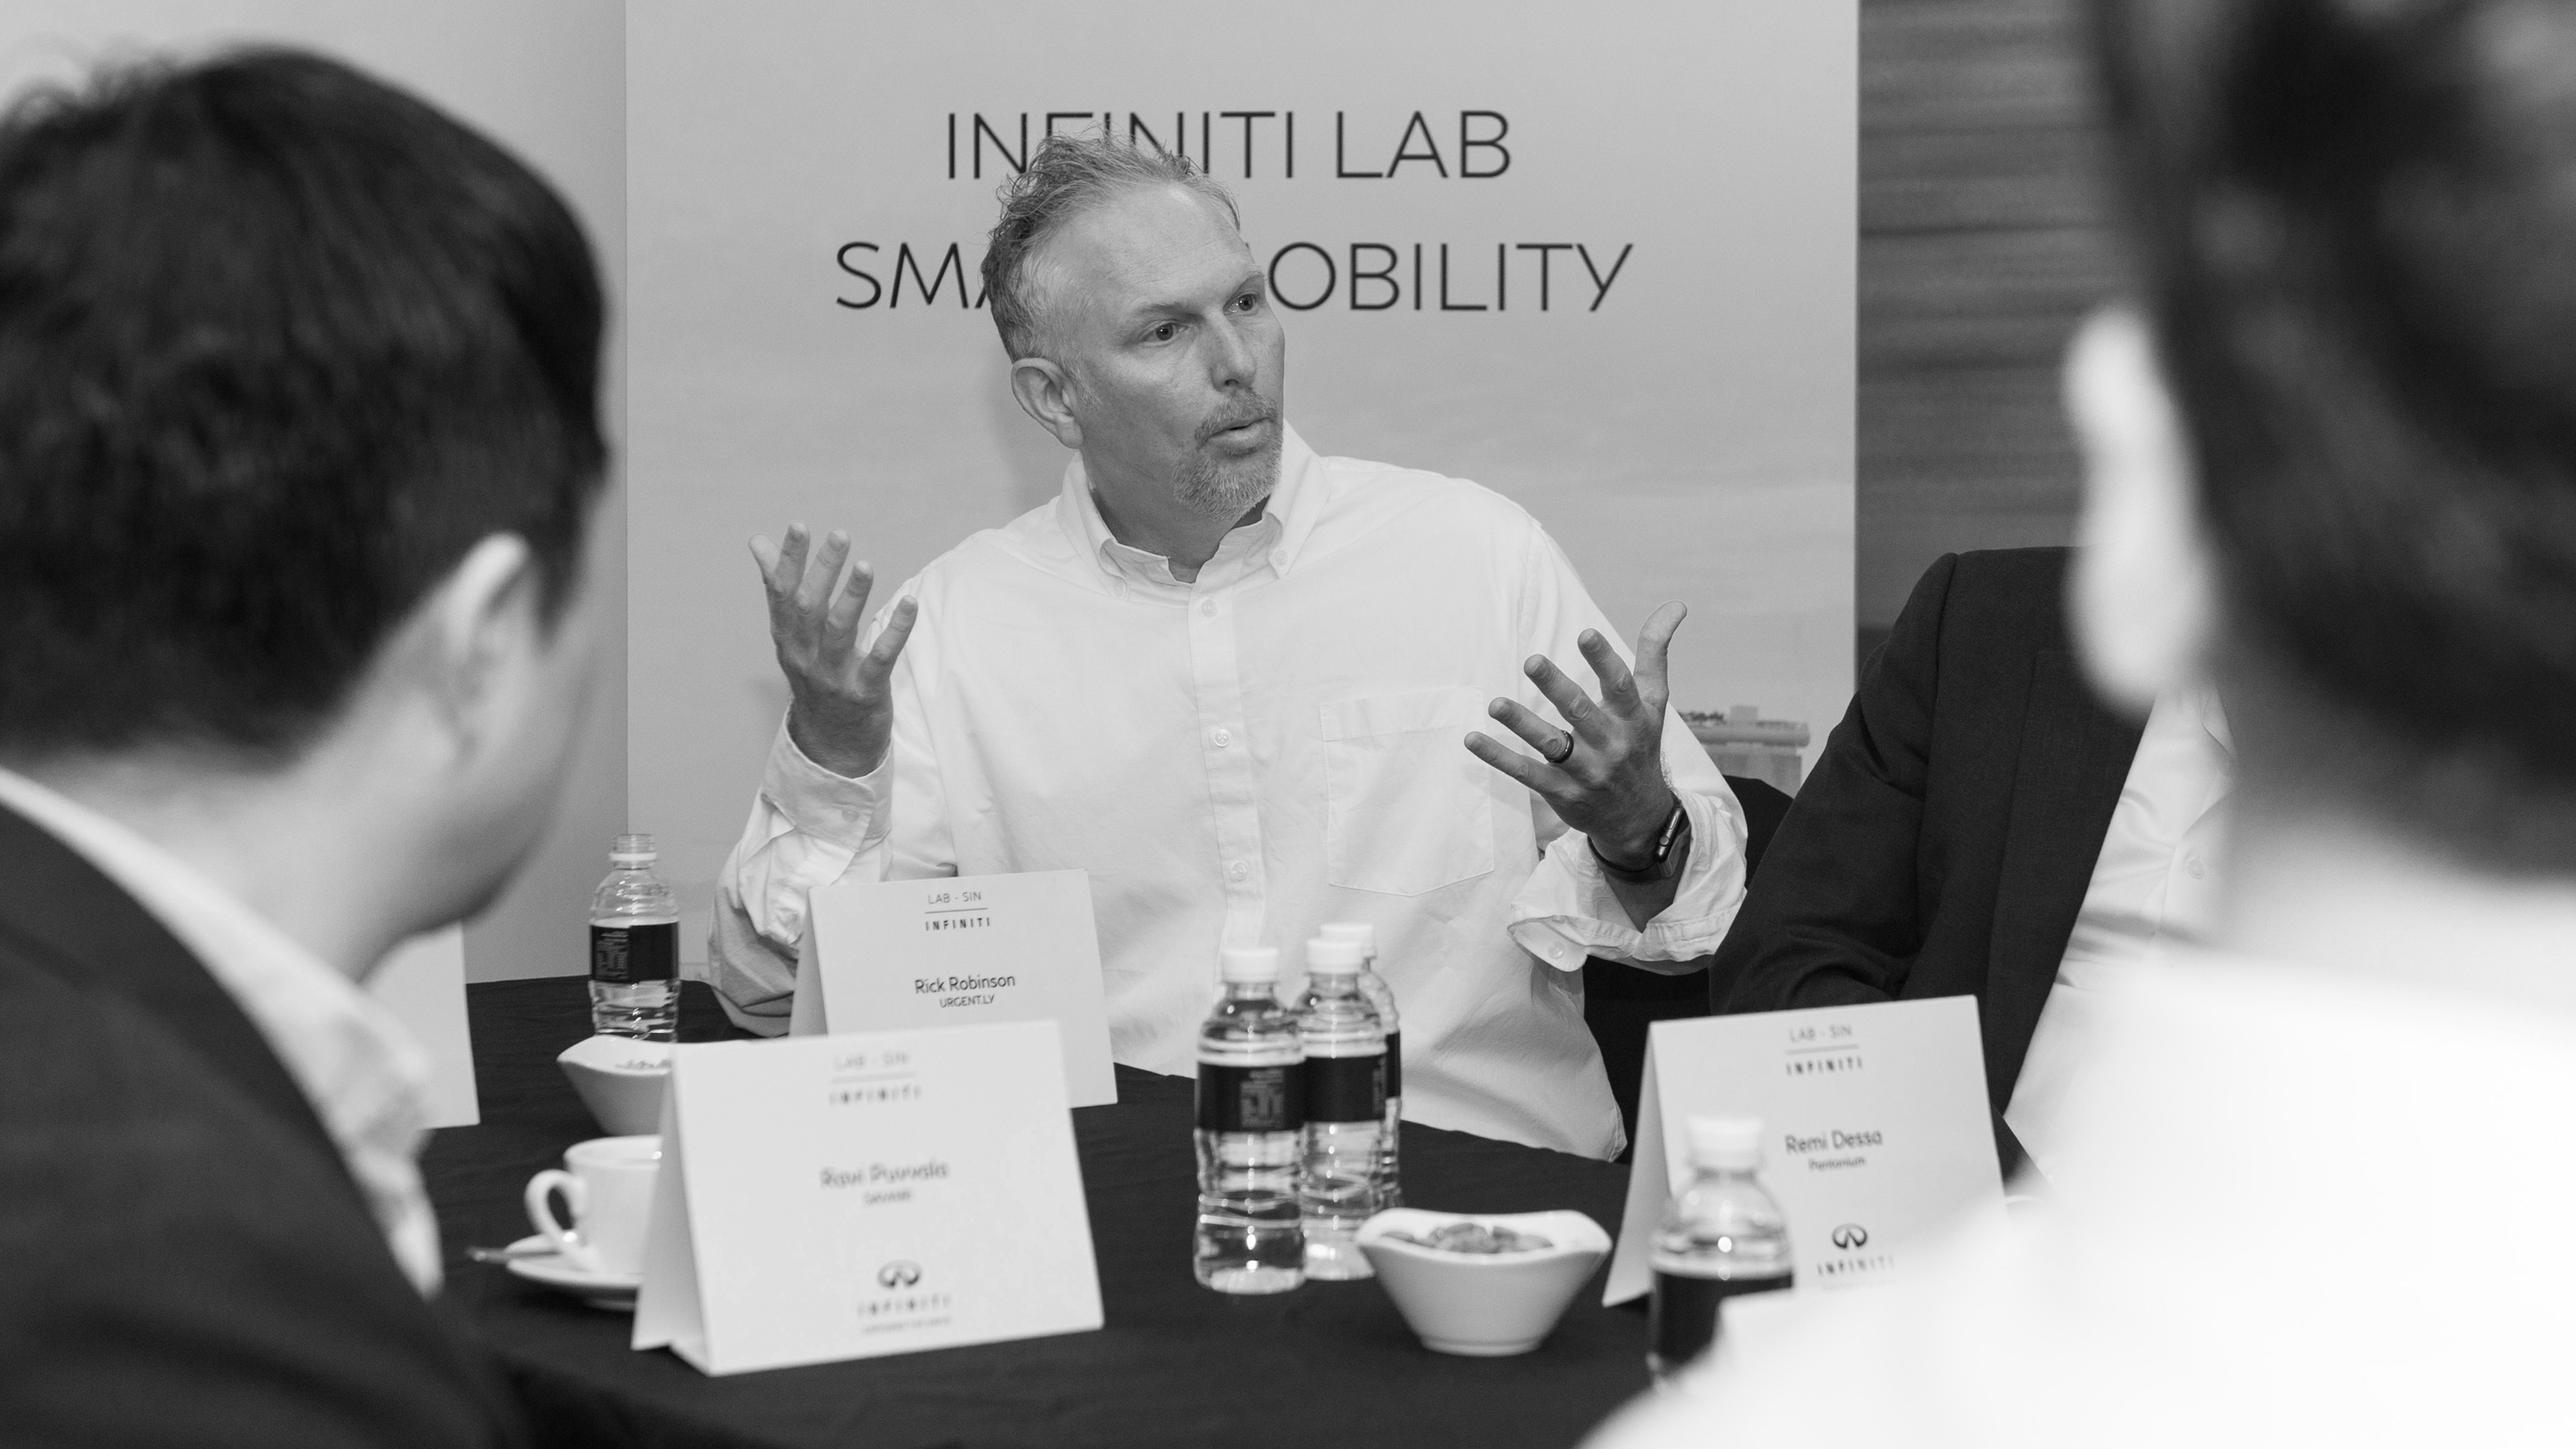 INFINITI LAB Integrate program participants